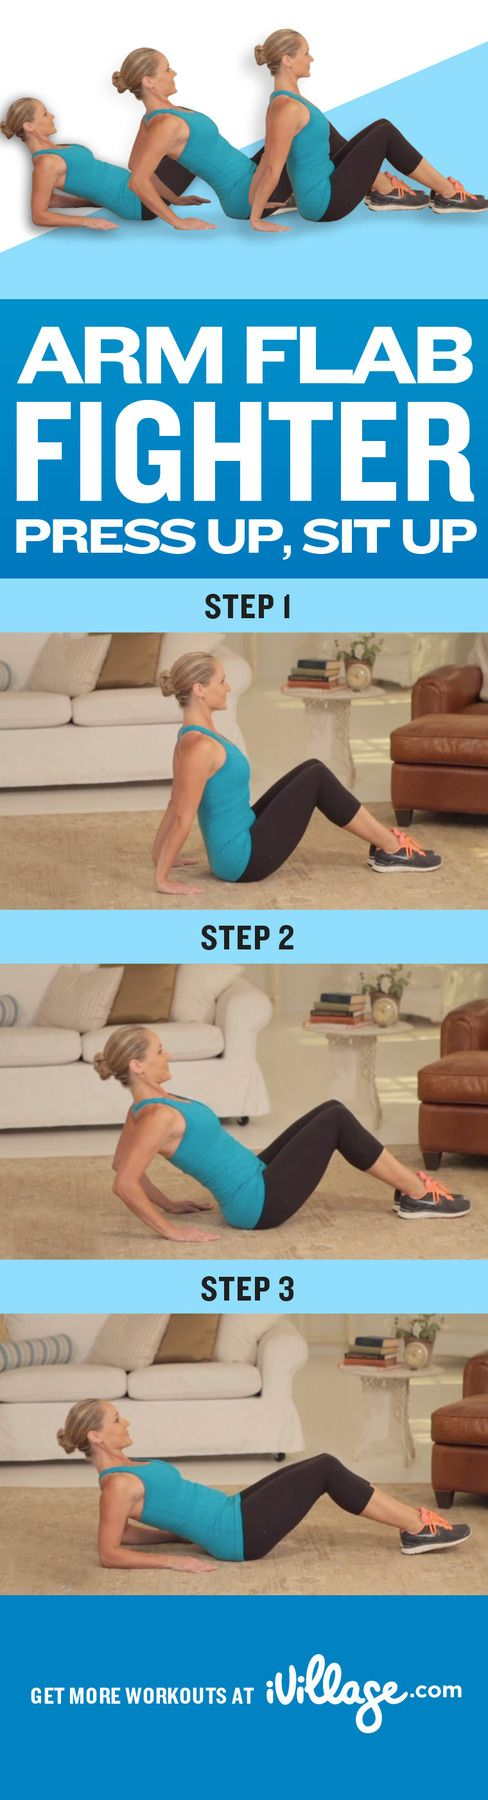 Simple exercises to tone your arms. #workout http://www.ivillage.com/simple-arm-exercises-fight-flab/4-h-489481?cid=pin|workout|armflabfighter|12-12-12